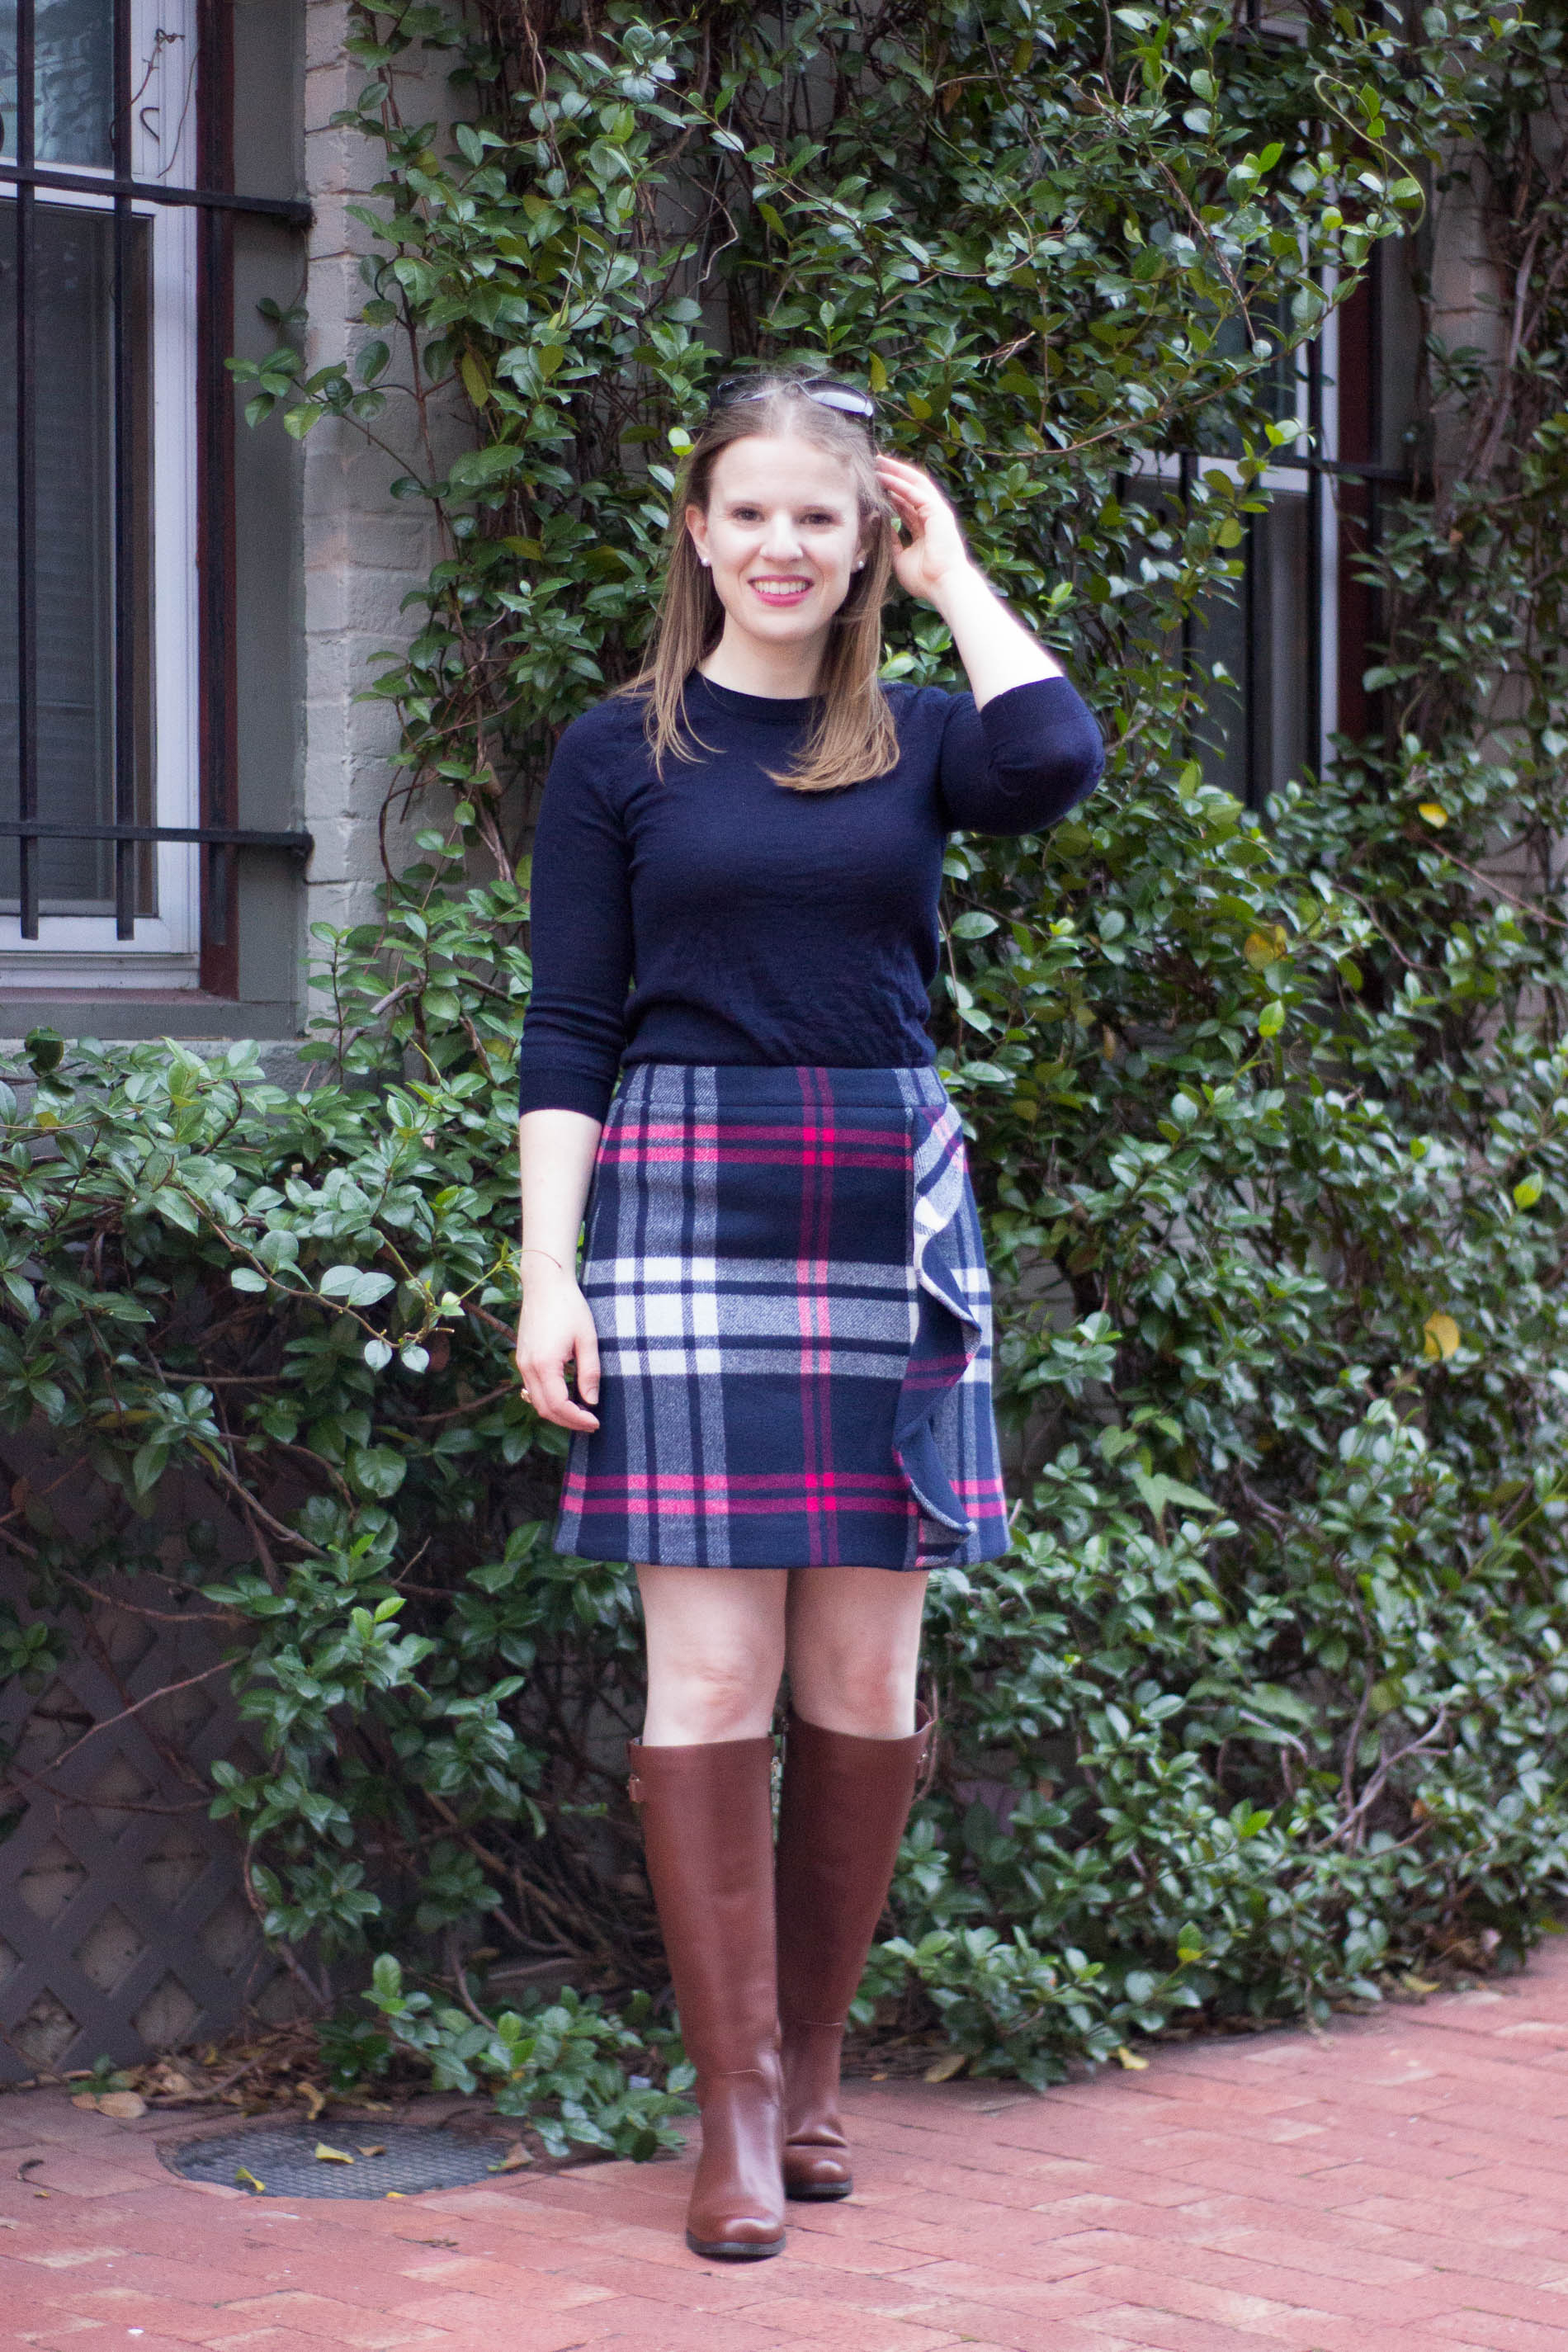 The 5 Days to Holiday Savings Challenge | Something Good, @danaerinw , fall outfit, fall style, women's fashion, women's clothing, women's style, fall clothes, navy sweater, crew neck sweater, riding boots, thanksgiving, thanksgiving outfit, workoutfit, plaid skirt outfit, skirts, women's skirt, brown boots